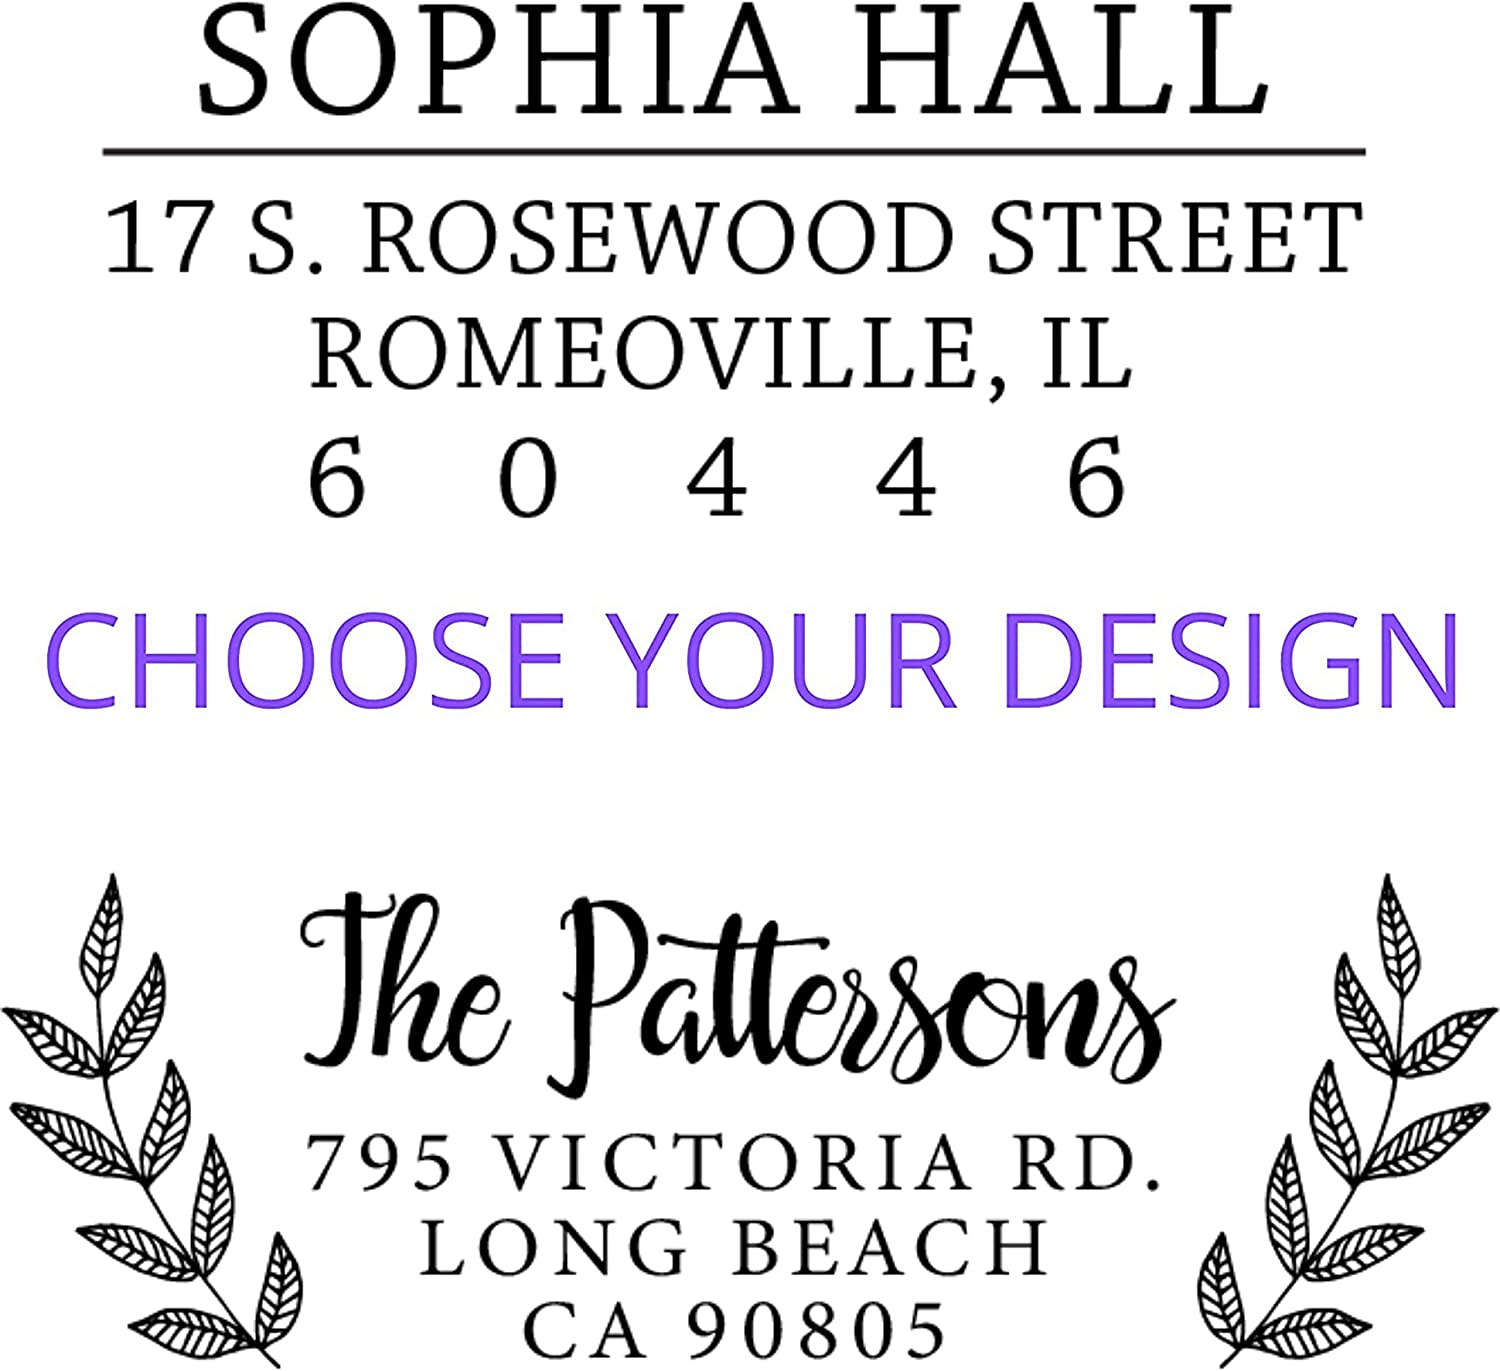 Personalized Return Address Stamp design #18 by Pipsy Wood or Self-Inking